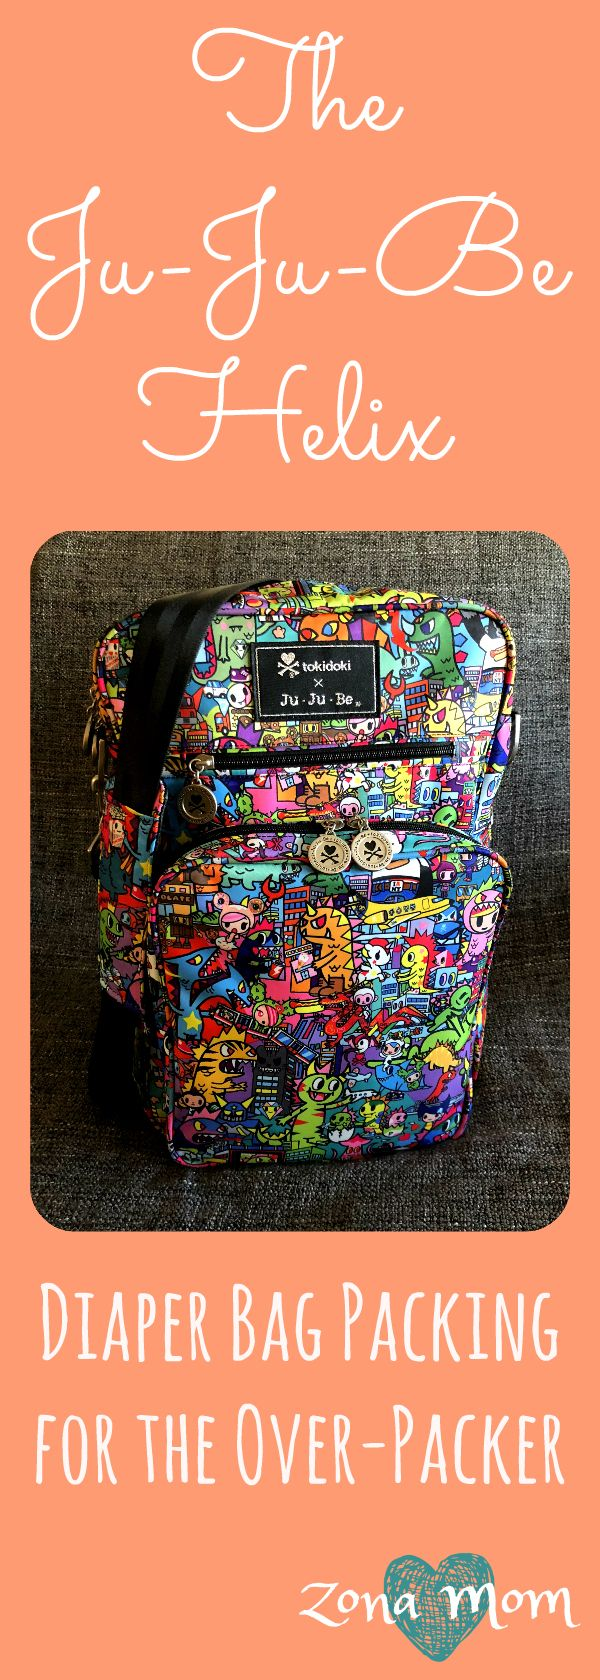 Ju-Ju-Be Helix Diaper Bag, packed by an organized over-packer.  #diaperbagorganization #daddiaperbags #jujubepacking